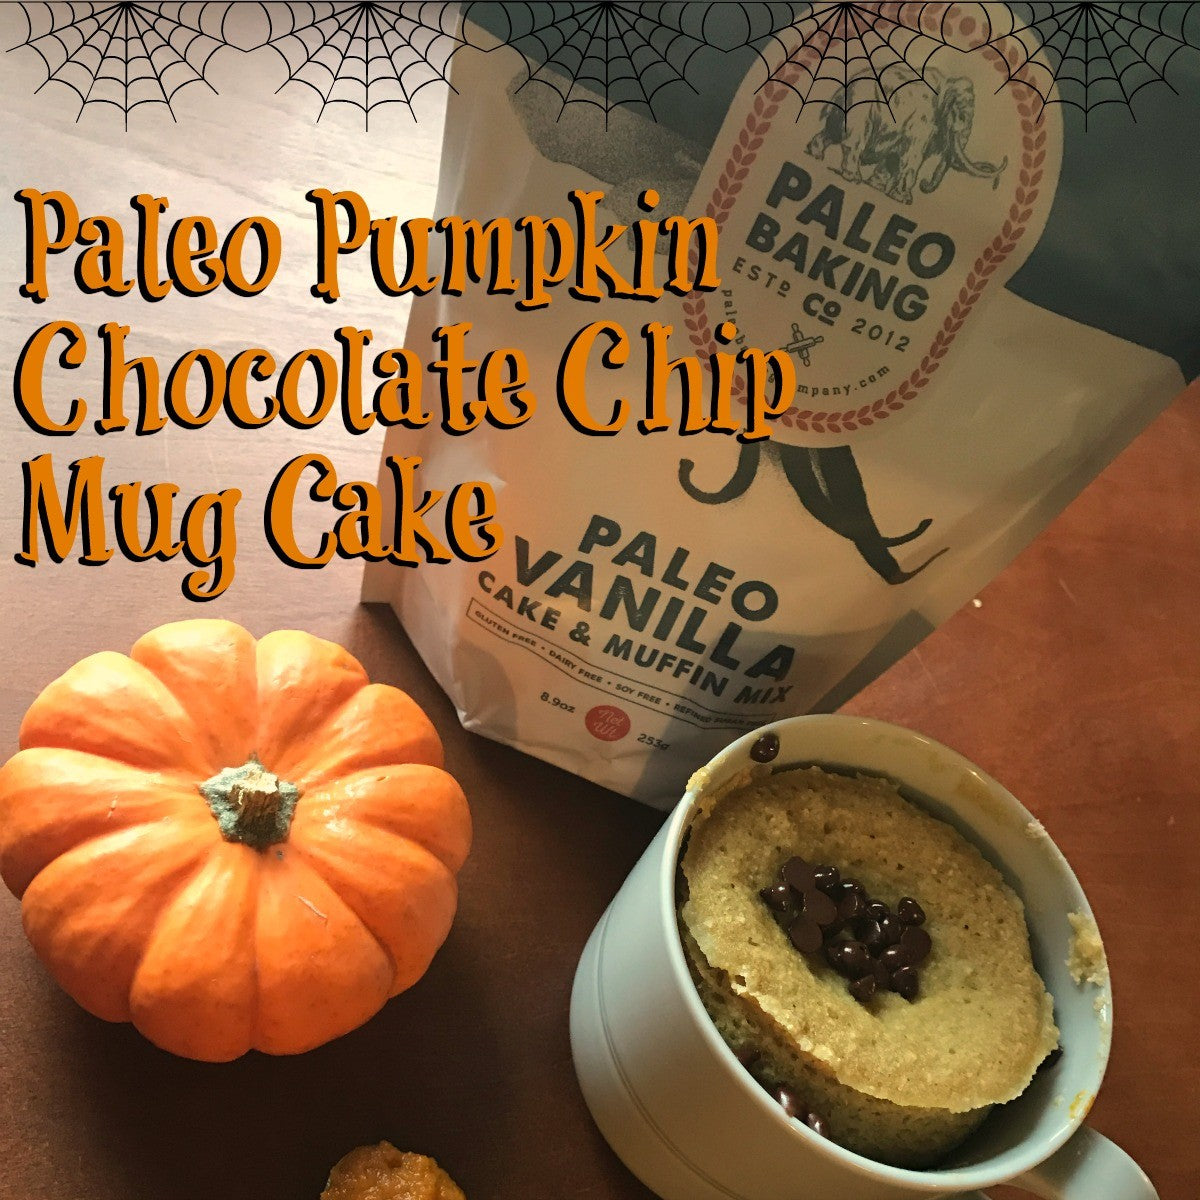 Paleo Pumpkin Chocolate Chip Mug Cake